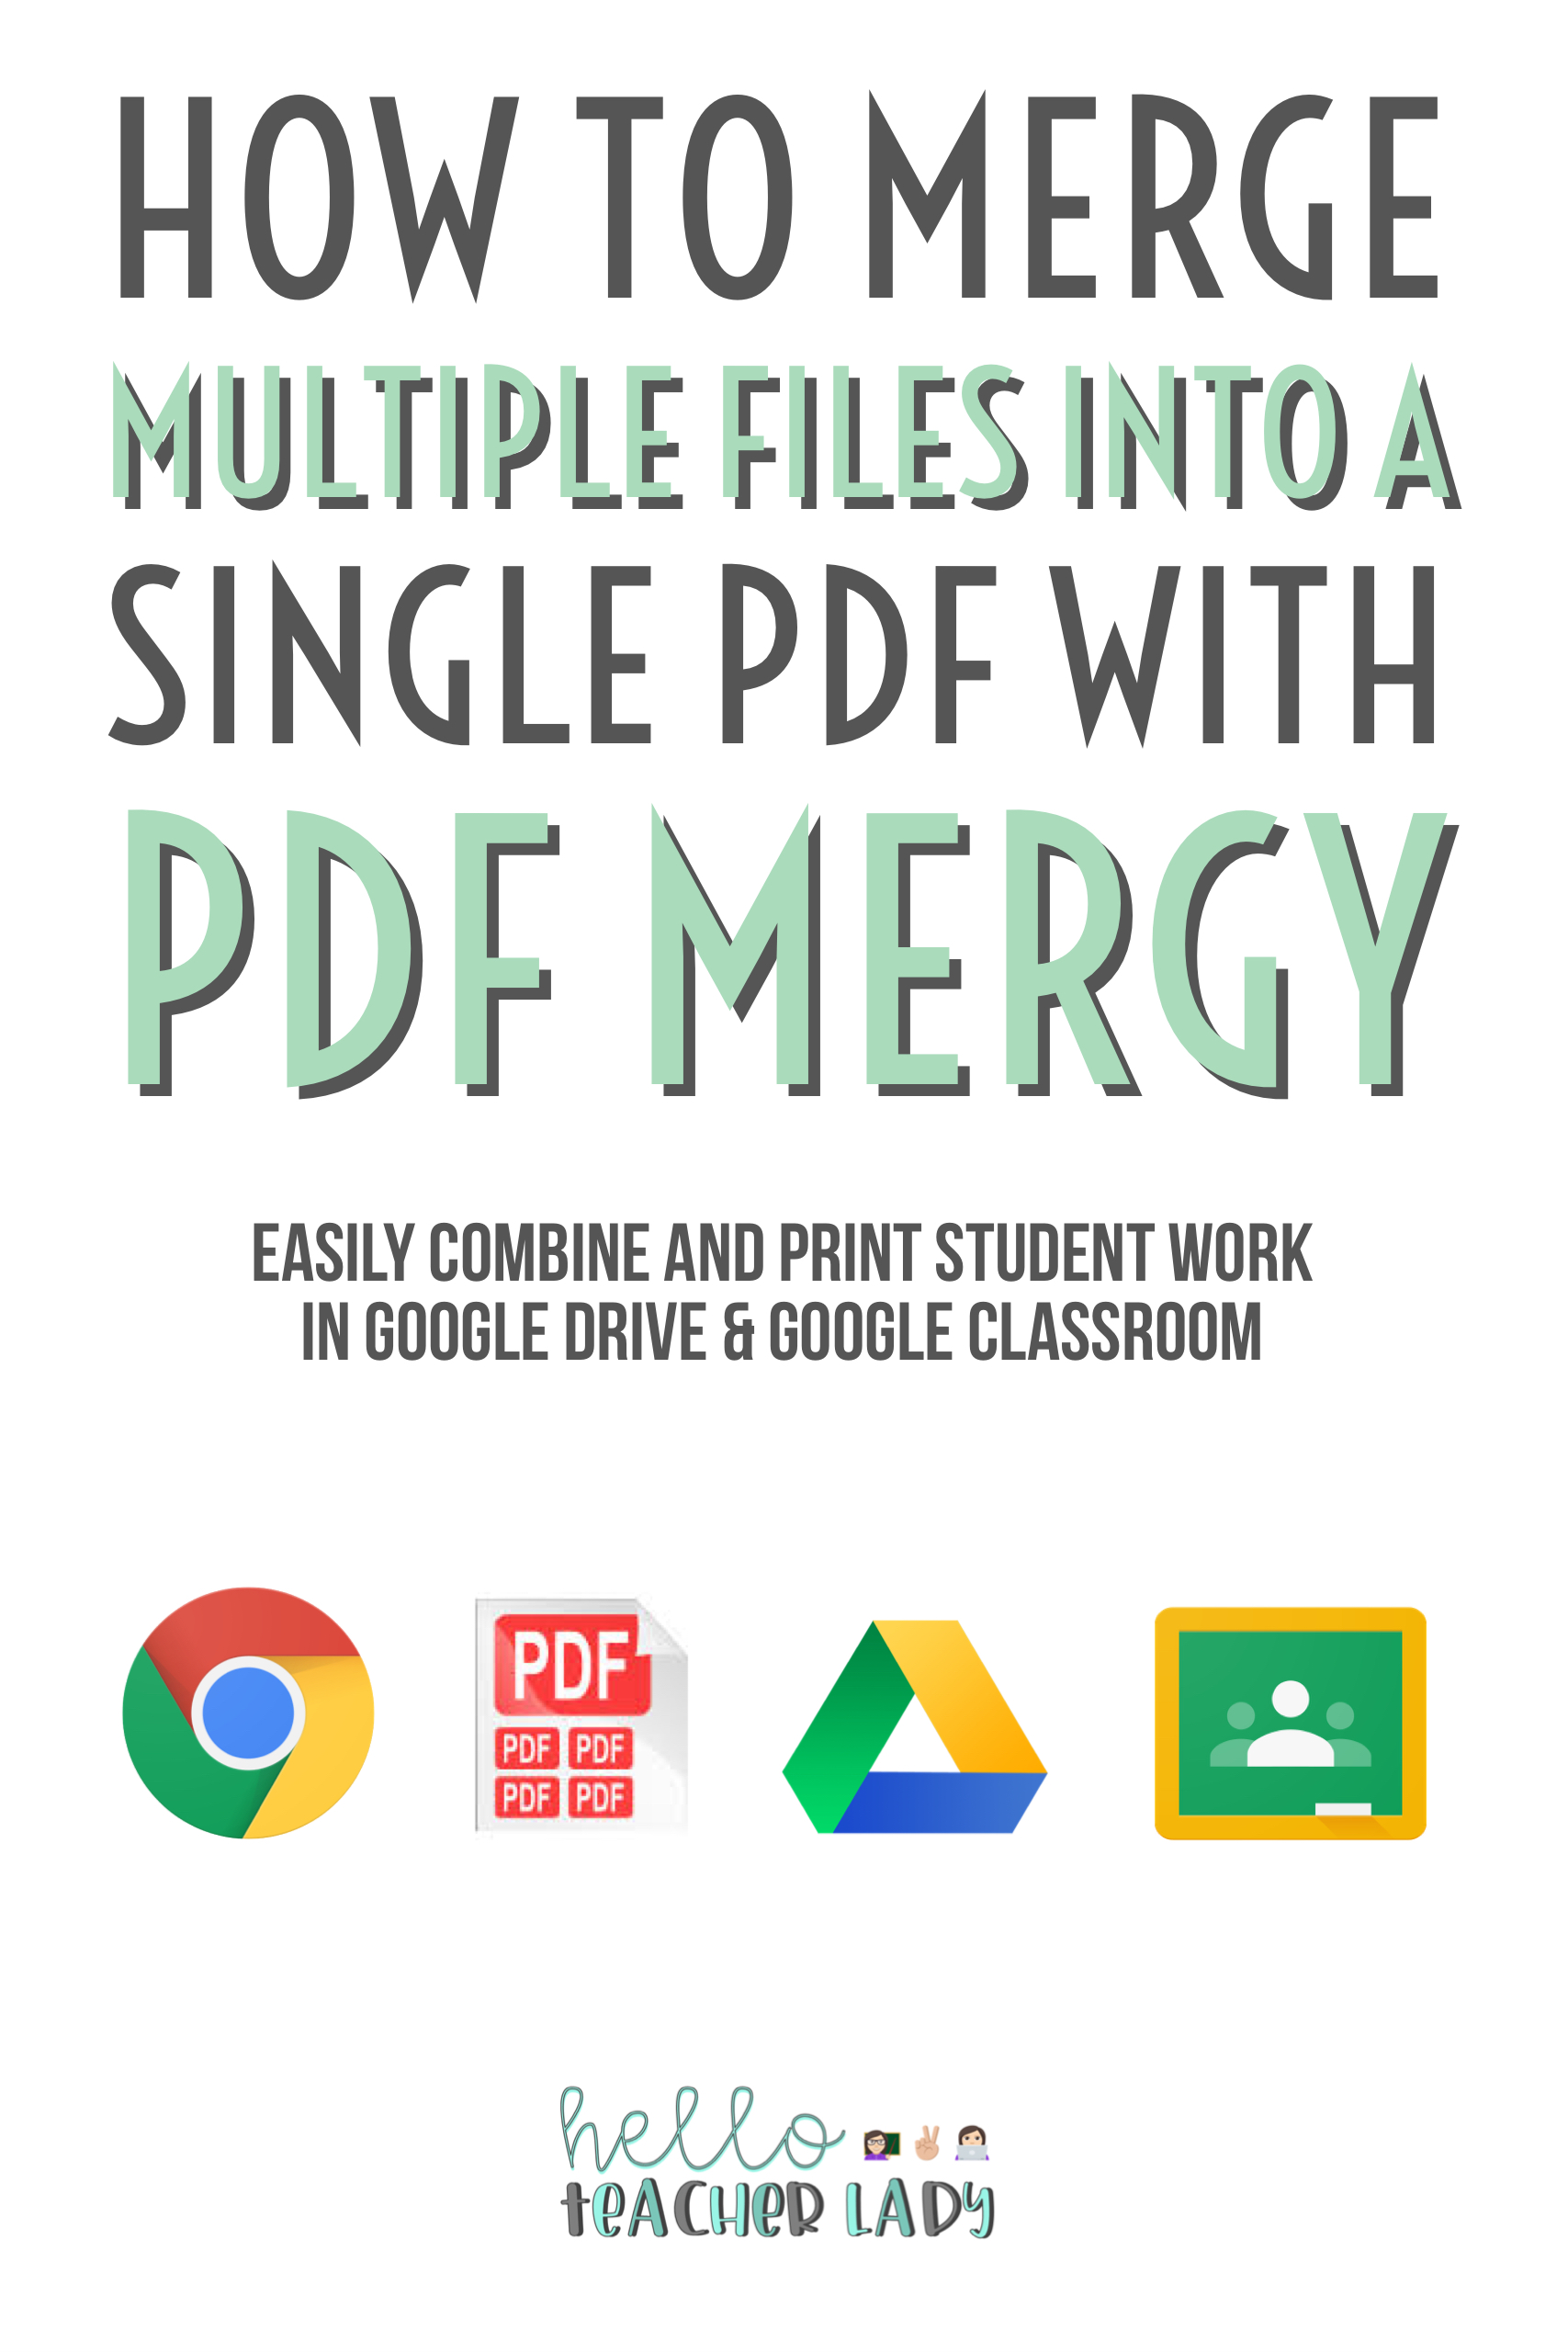 PDF Mergy is a Chrome extension that merges multiple files into a single PDF. This allows you to combine or print a batch of student work without having to open each individual file.